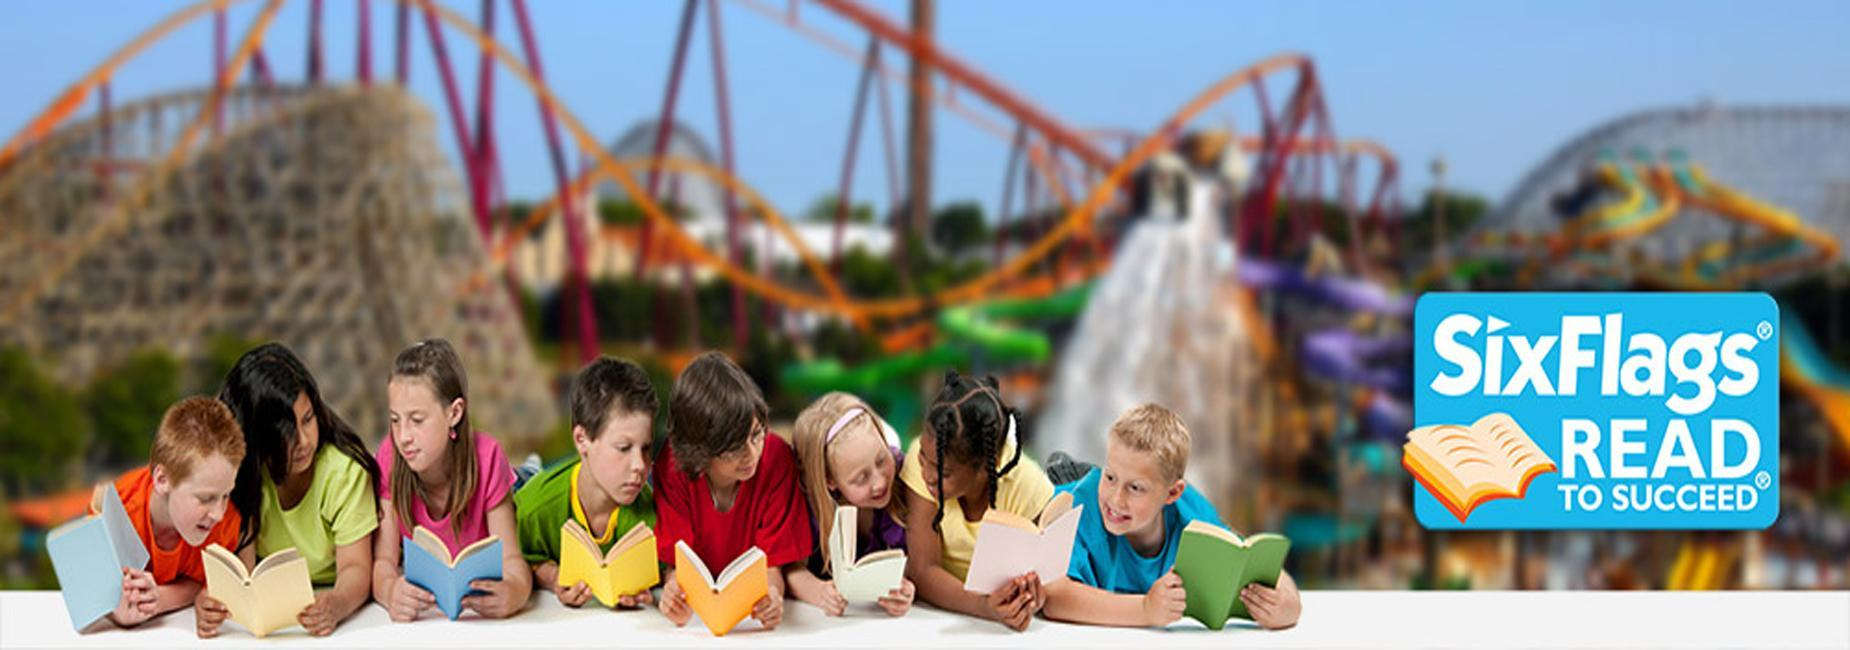 Six Flags Read to Succeed Details coming soon!